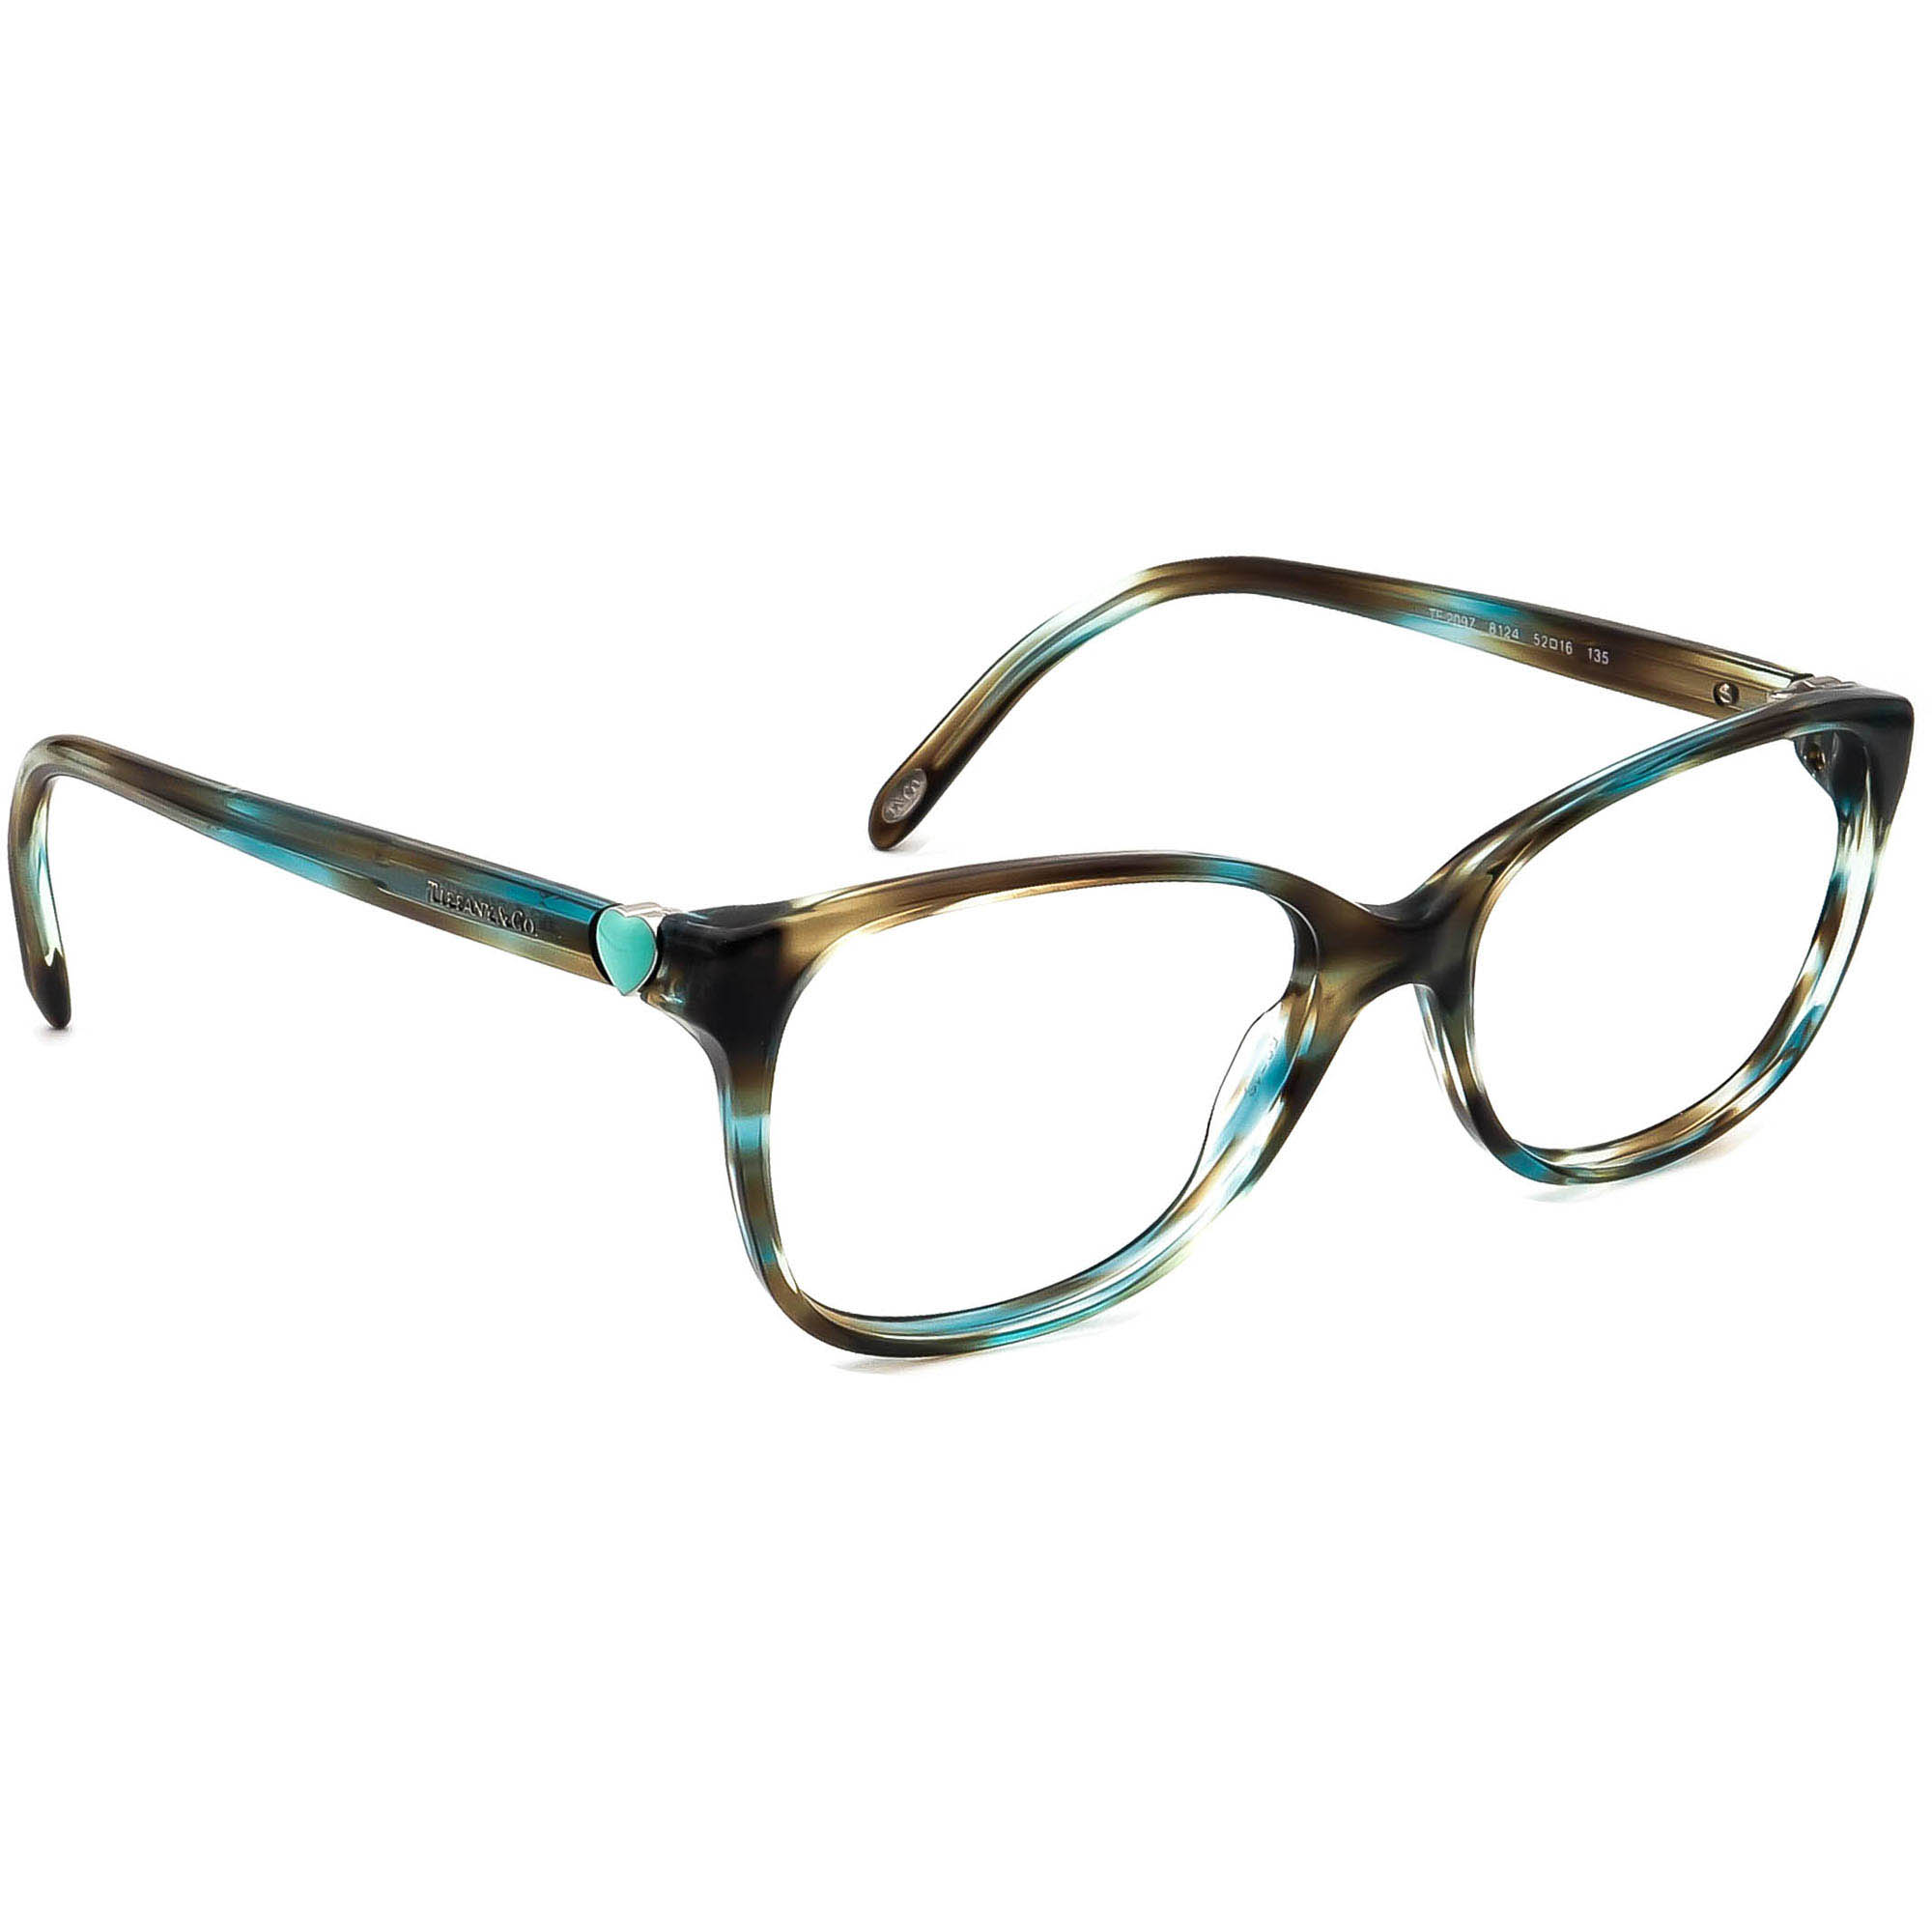 Tiffany & Co. Eyeglasses TF 2097 8124 Ocean Tortoise Frame Italy 52[]16 135